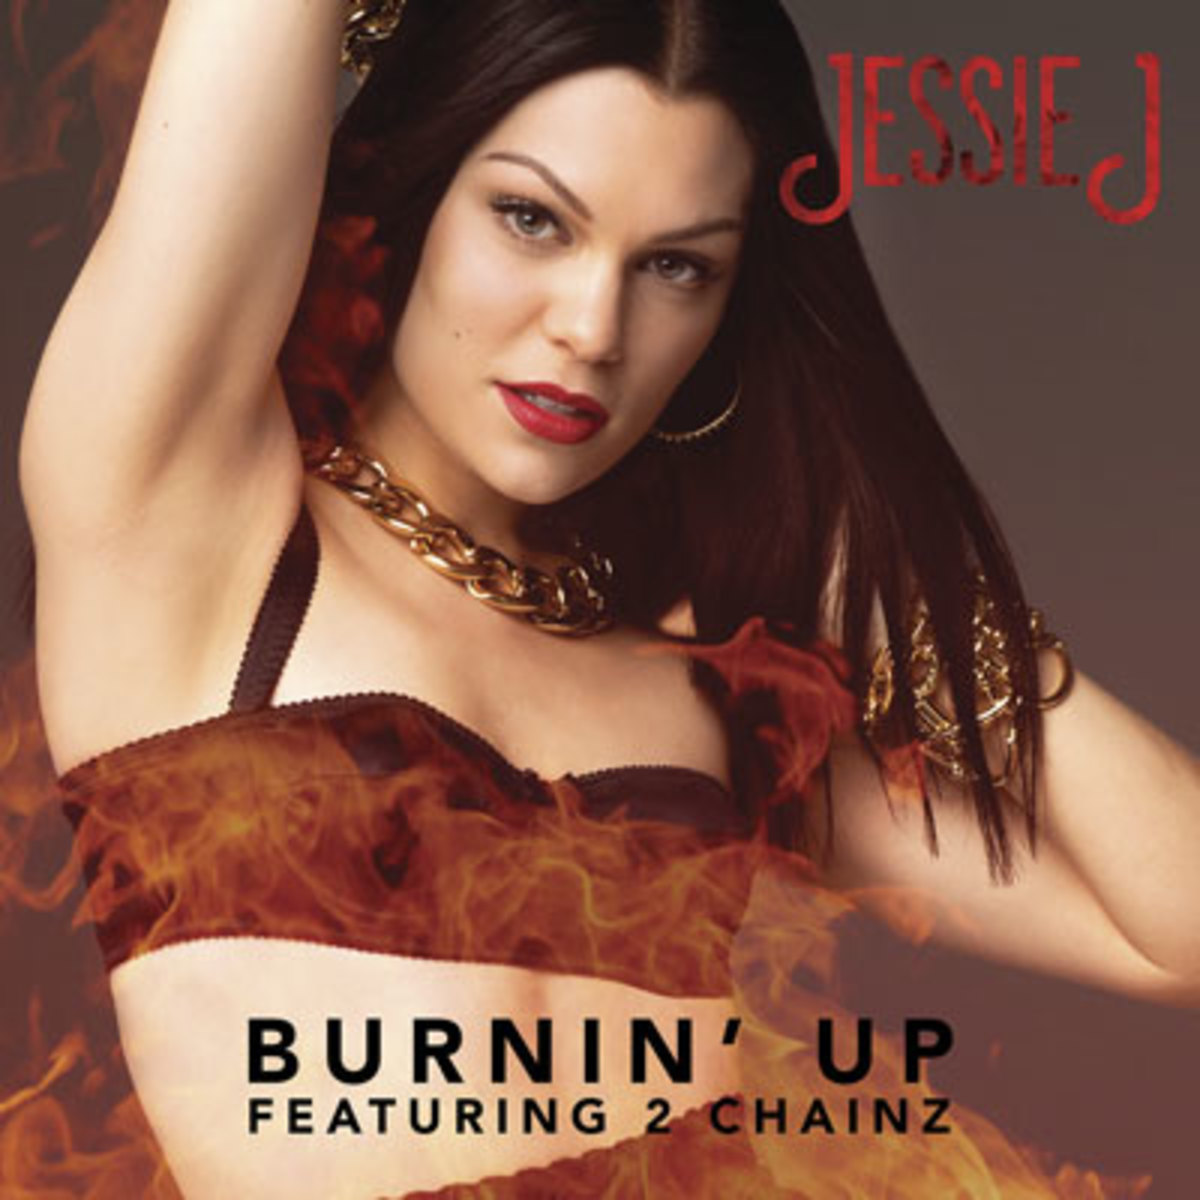 jessiej-burninup.jpg